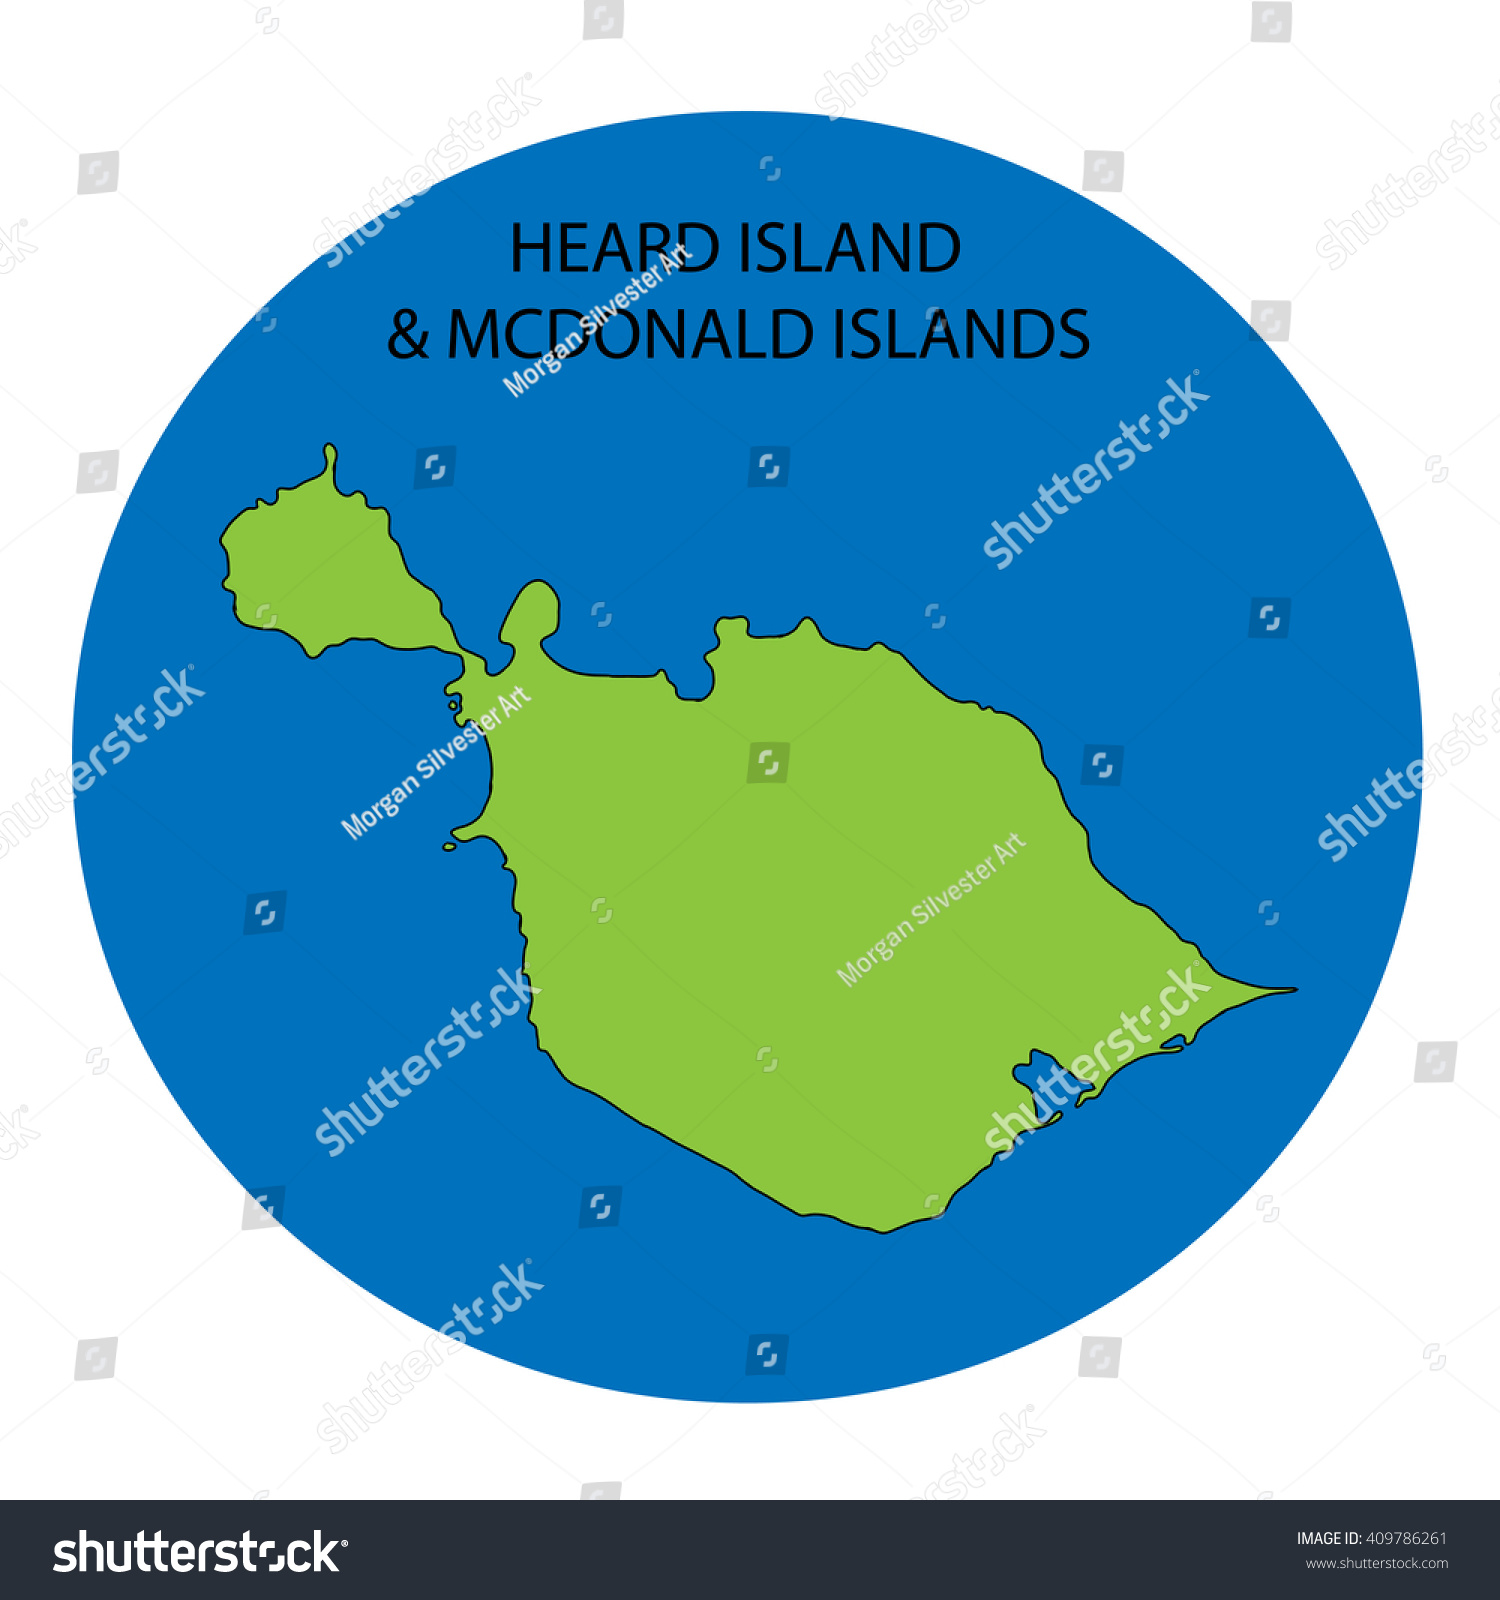 Heard Island Mc Donald Islands Map Stock Illustration Royalty Free